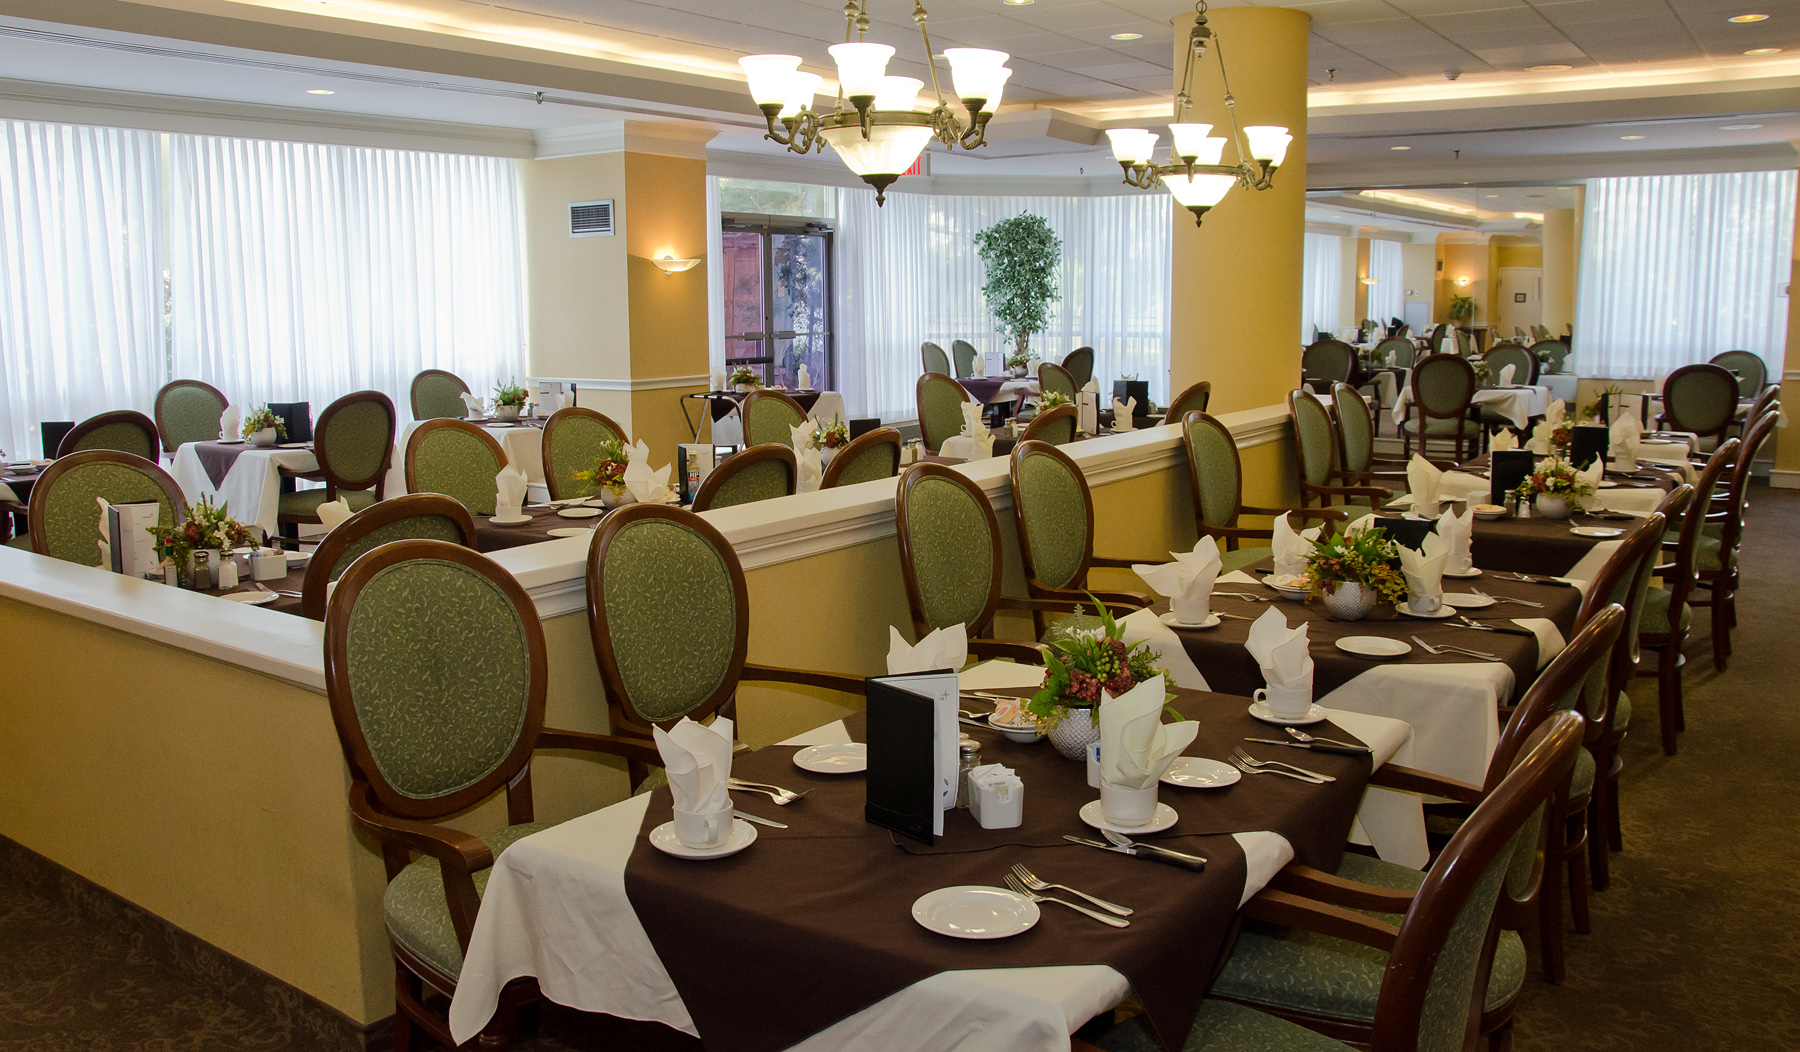 King gardens mississauga on ourbis for Best private dining rooms mississauga